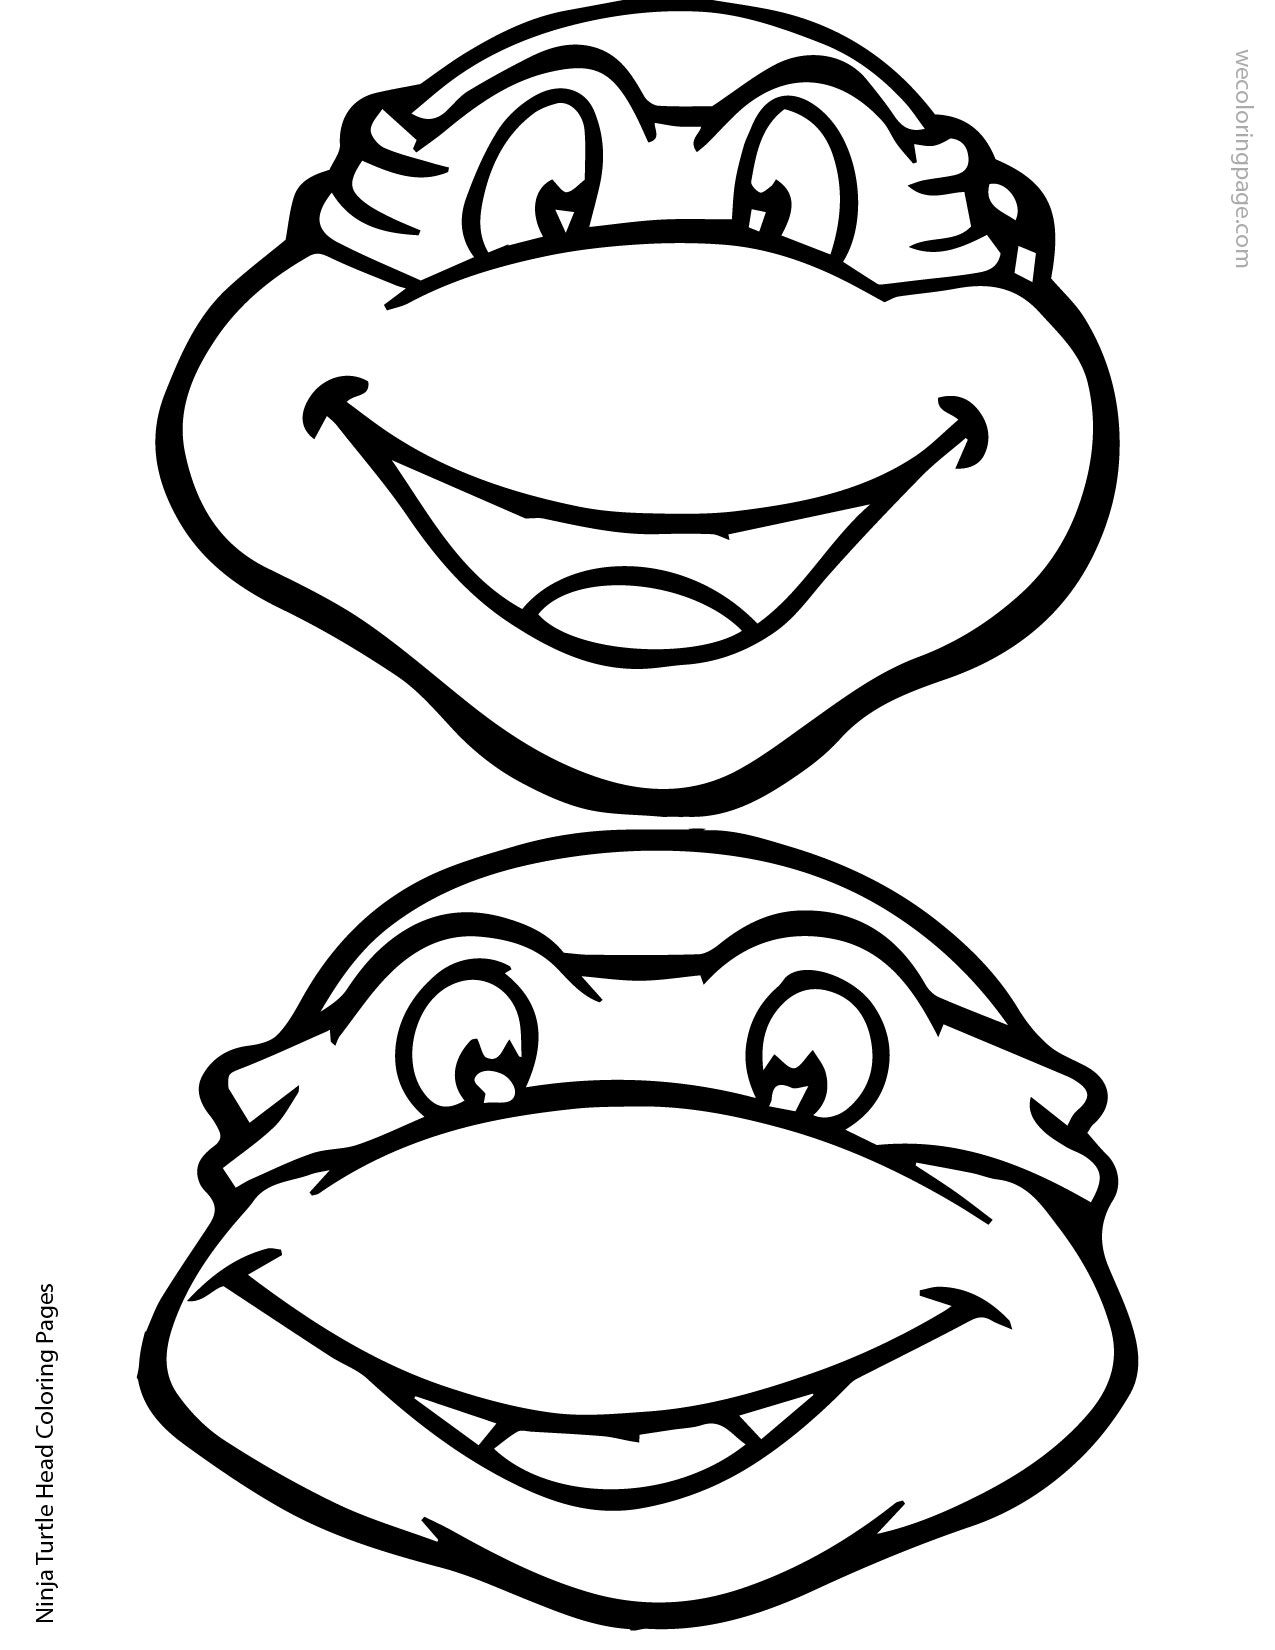 Teenage Mutant Ninja Turtles 2 Coloring Page Free Printable